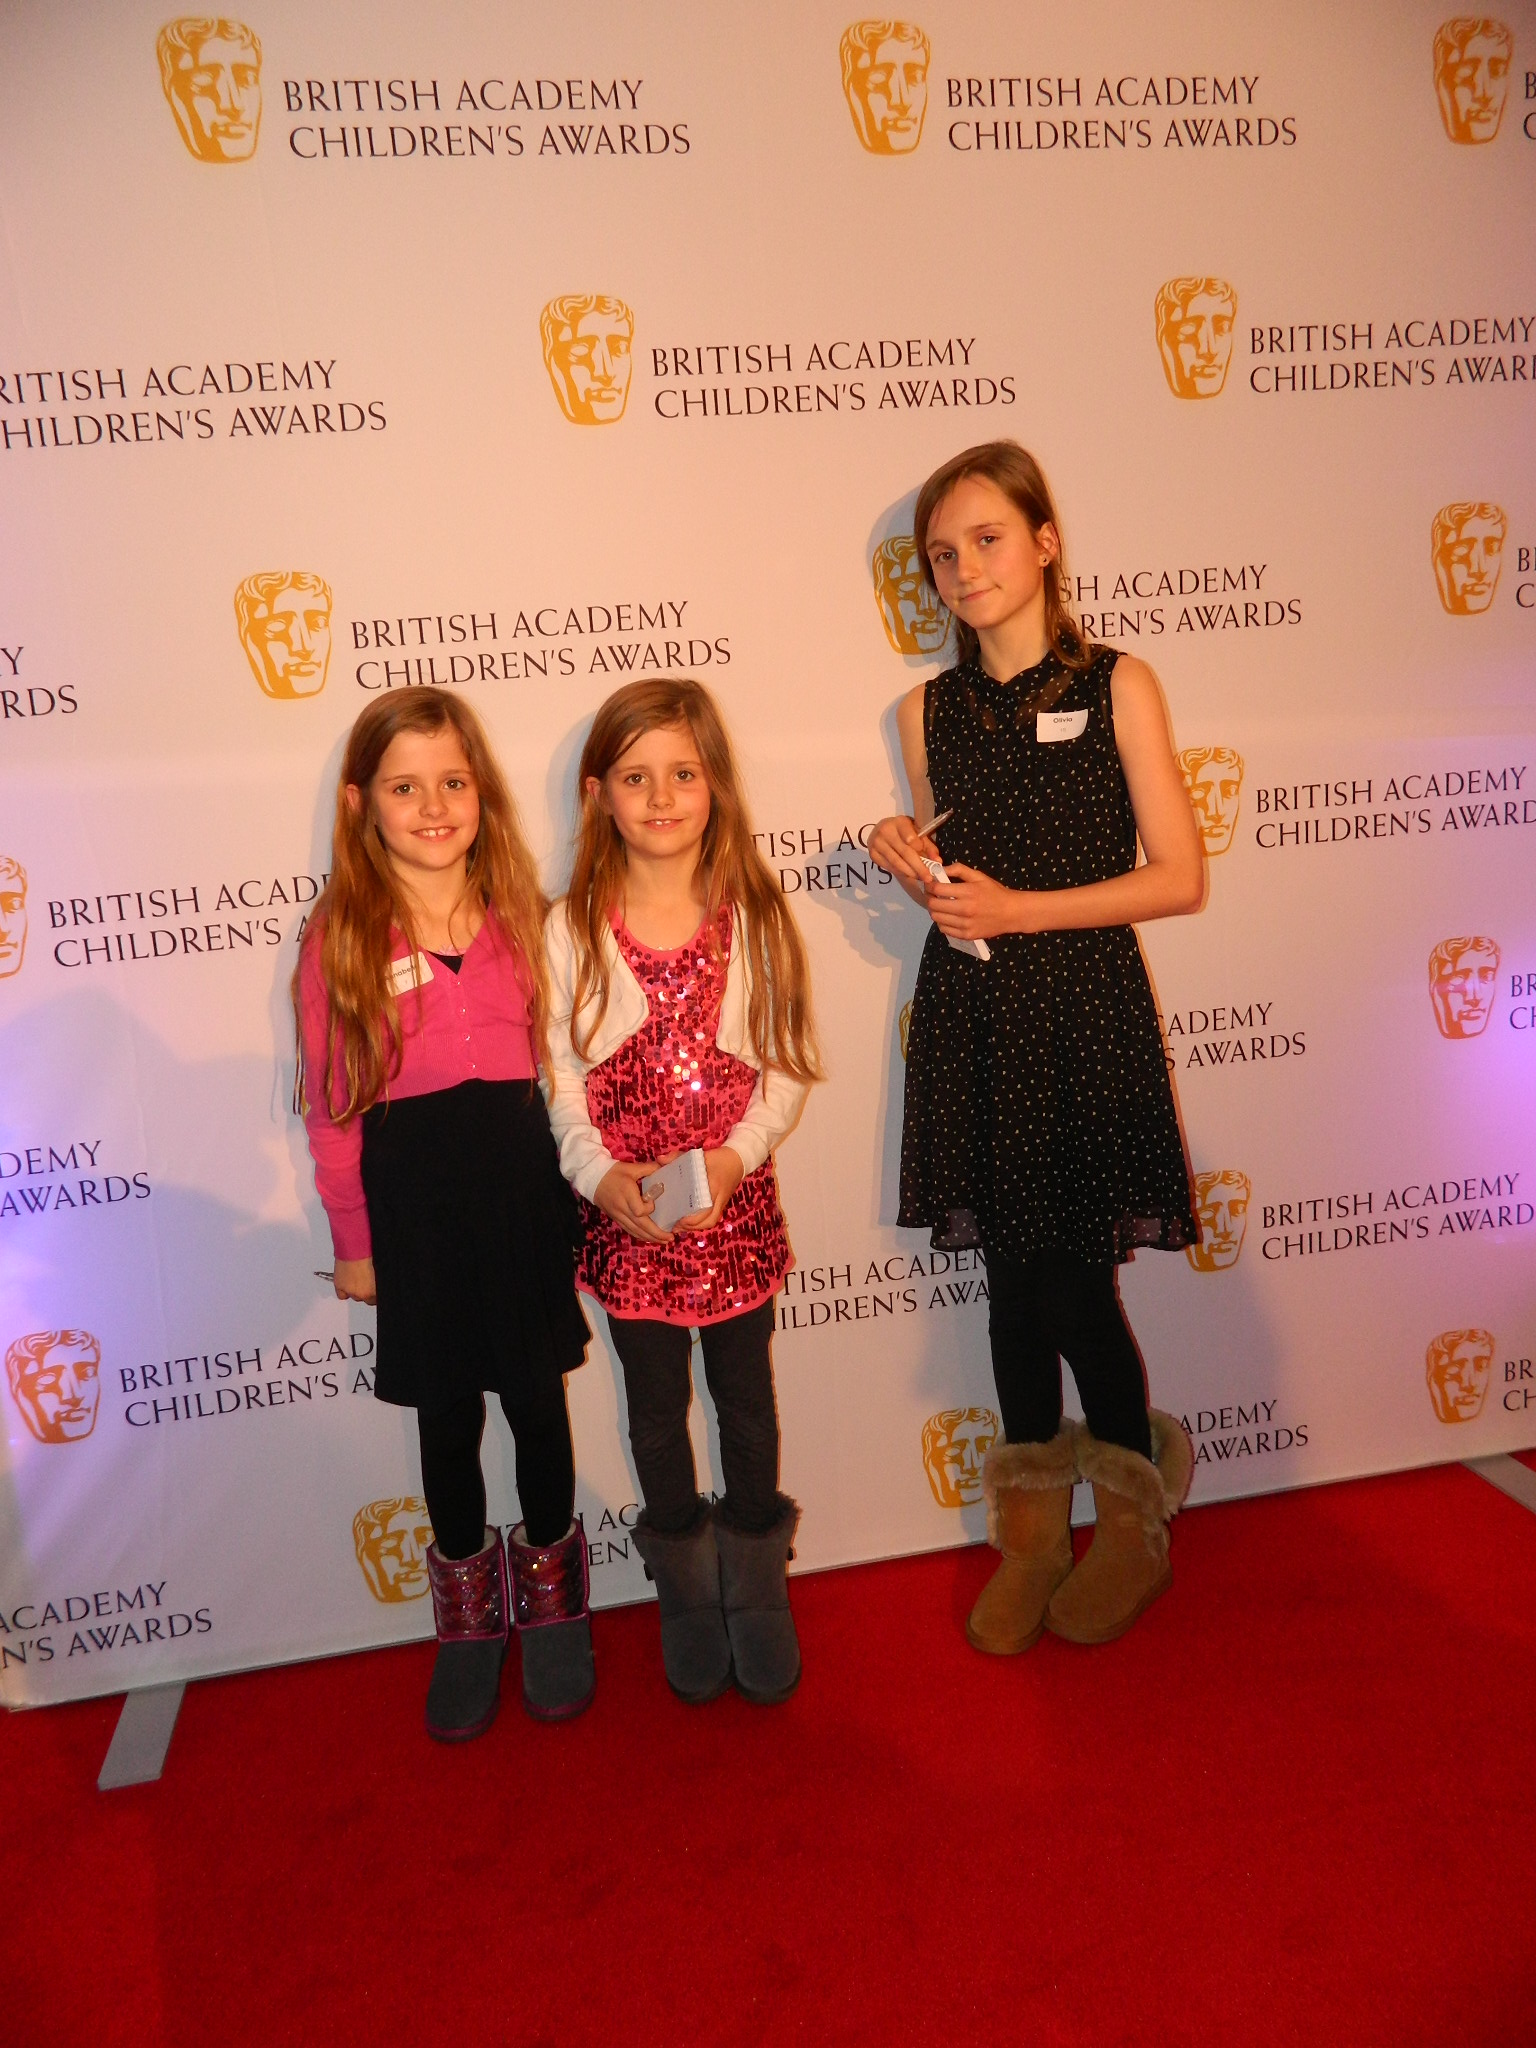 bafta kids red carpet experience with aampe and big sister